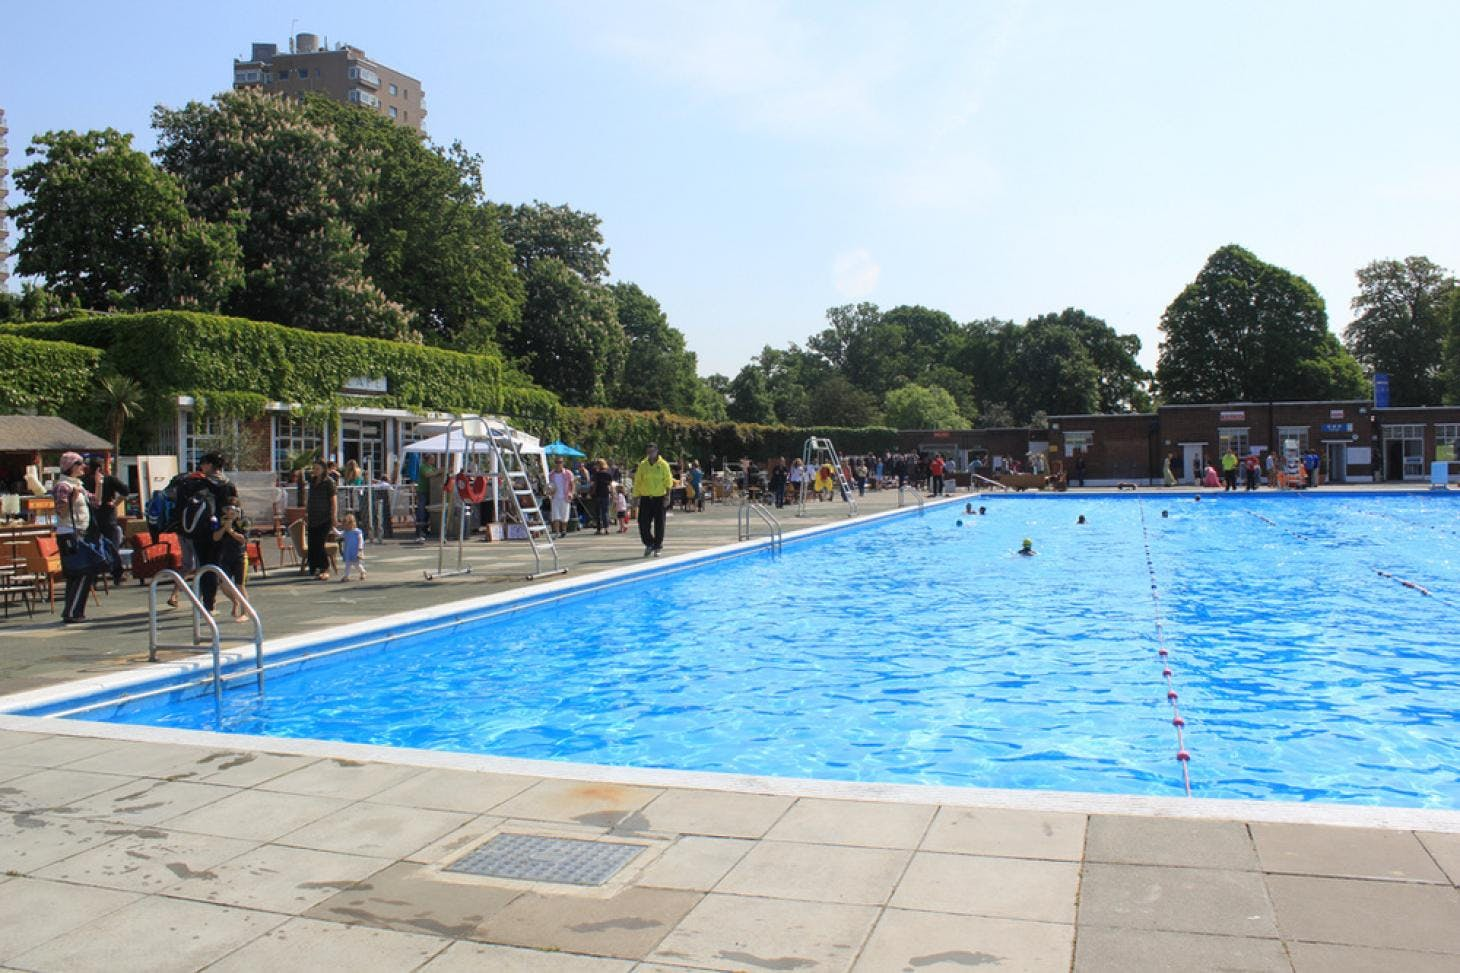 Brockwell Park Lido Outdoor swimming pool